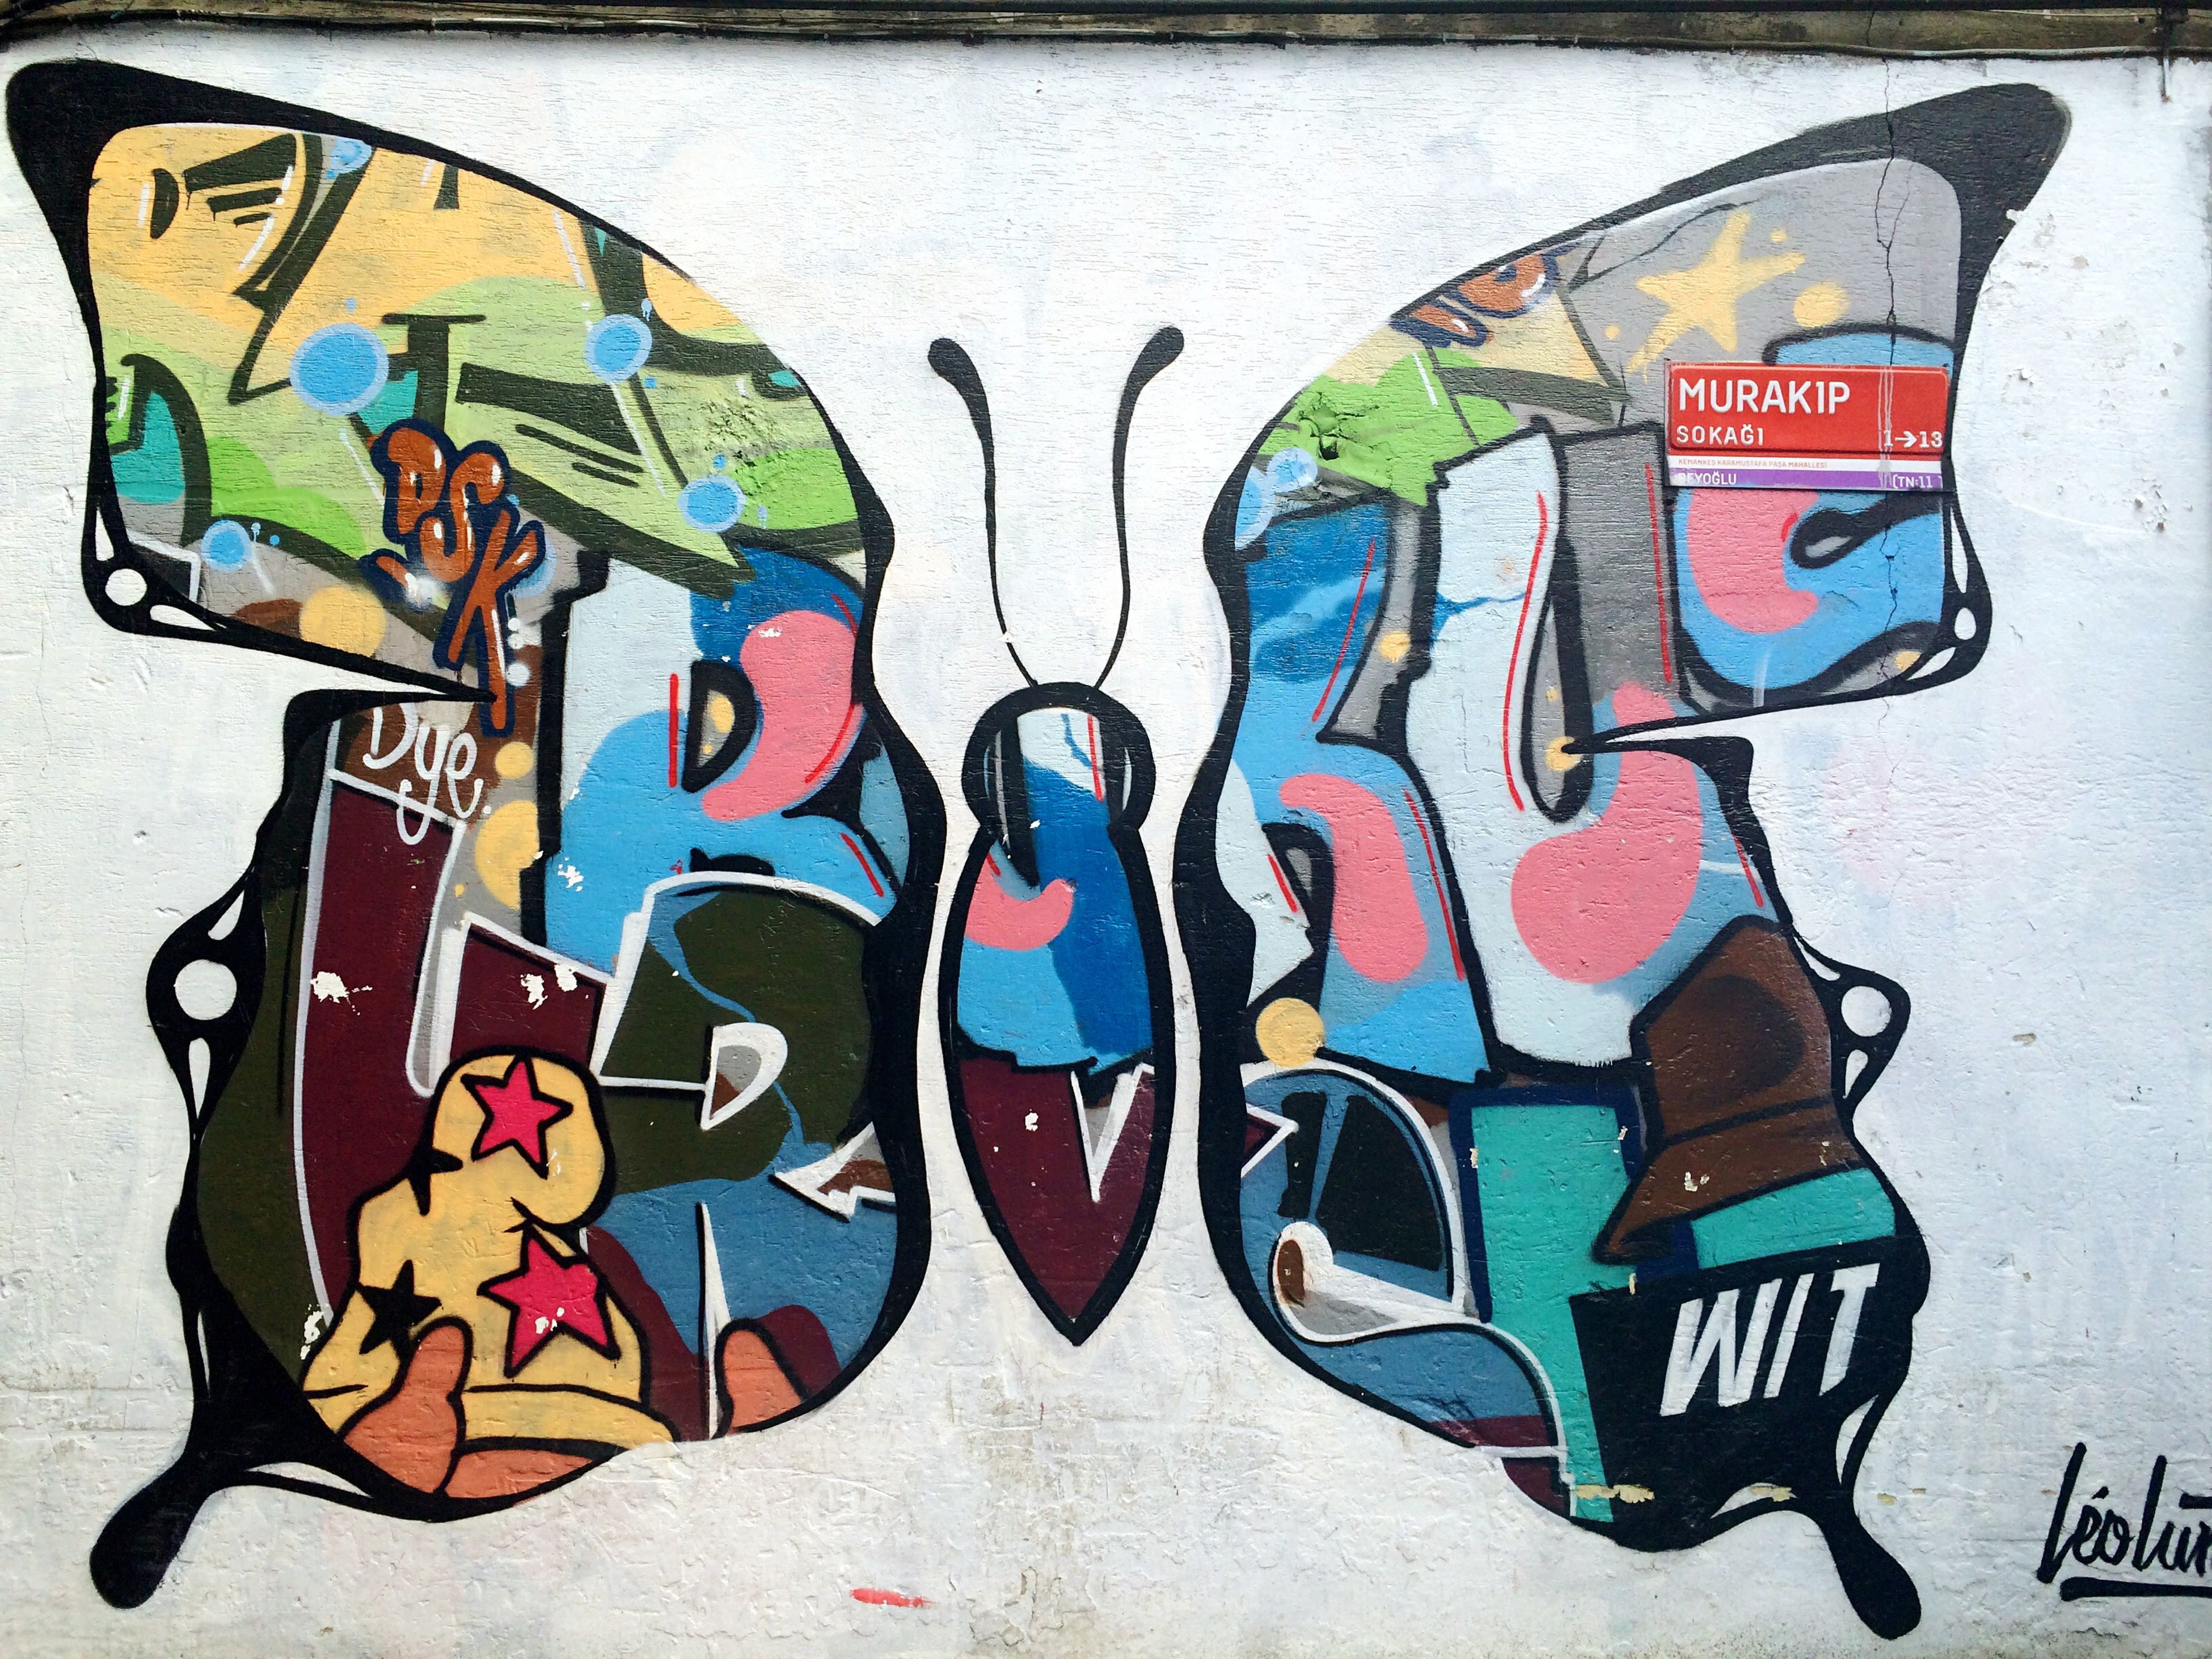 graffiti, creativity, art, art and craft, wall - building feature, text, multi colored, street art, western script, wall, communication, painting, built structure, architecture, mural, human representation, drawing - art product, paint, vandalism, painted